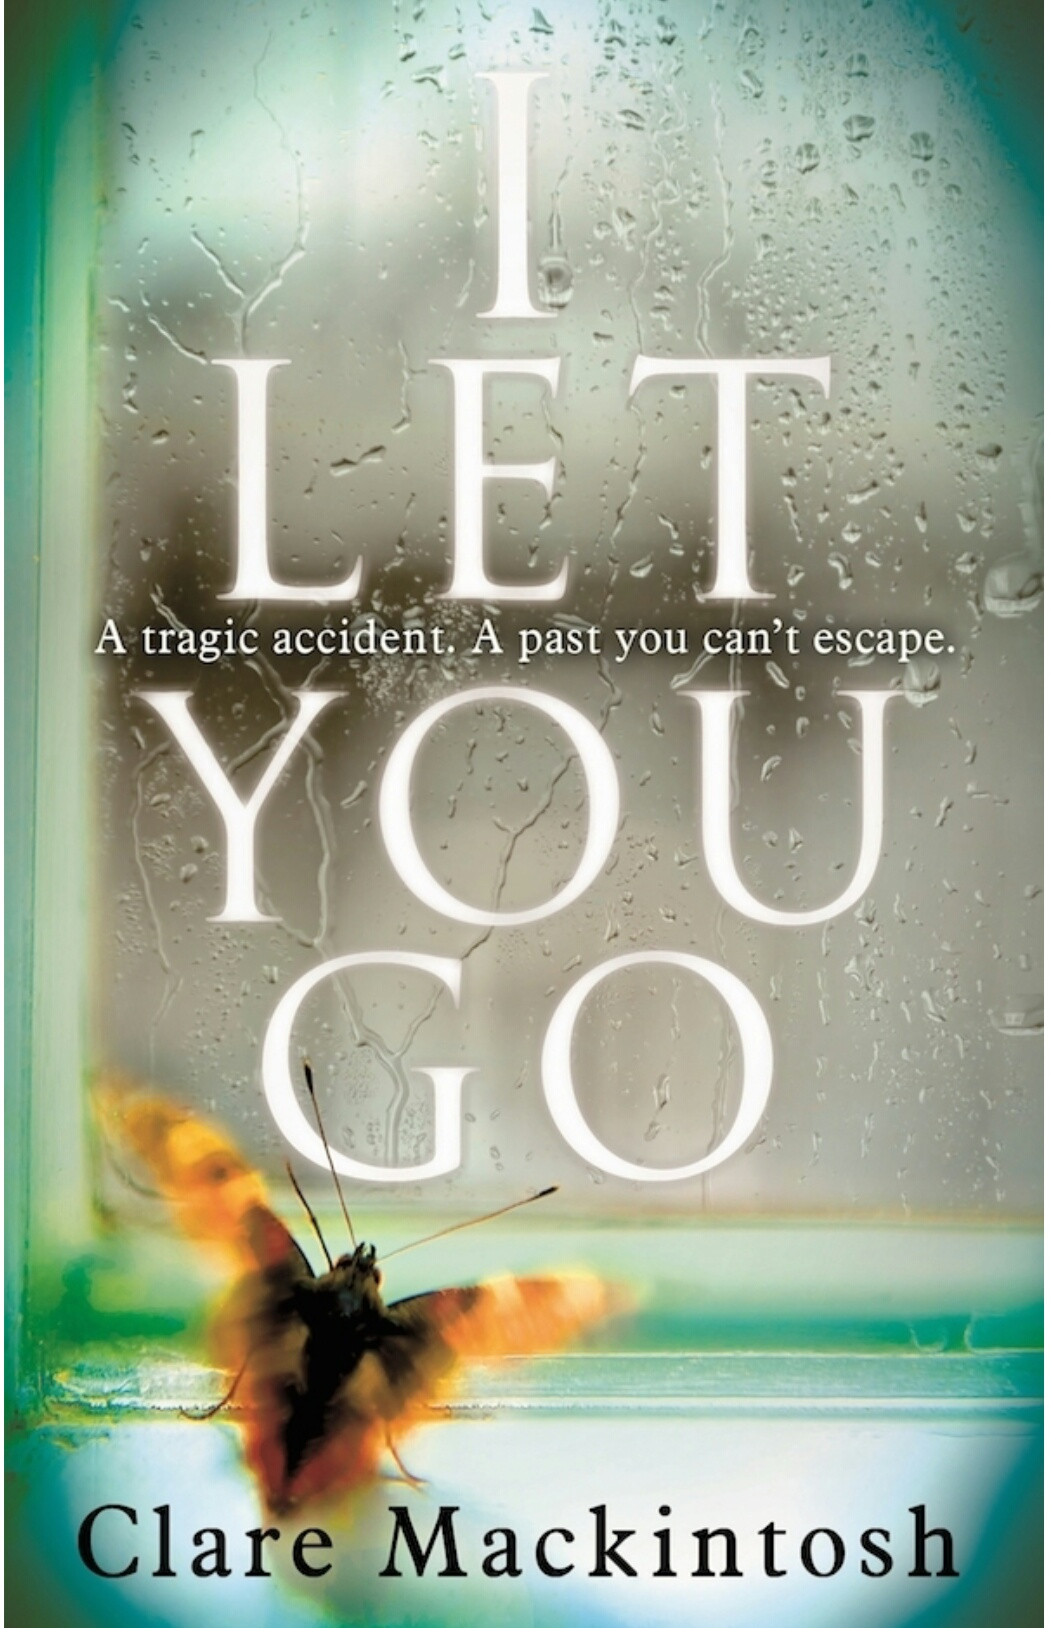 I Let You Go - Clare Mackintosh - Book Cover